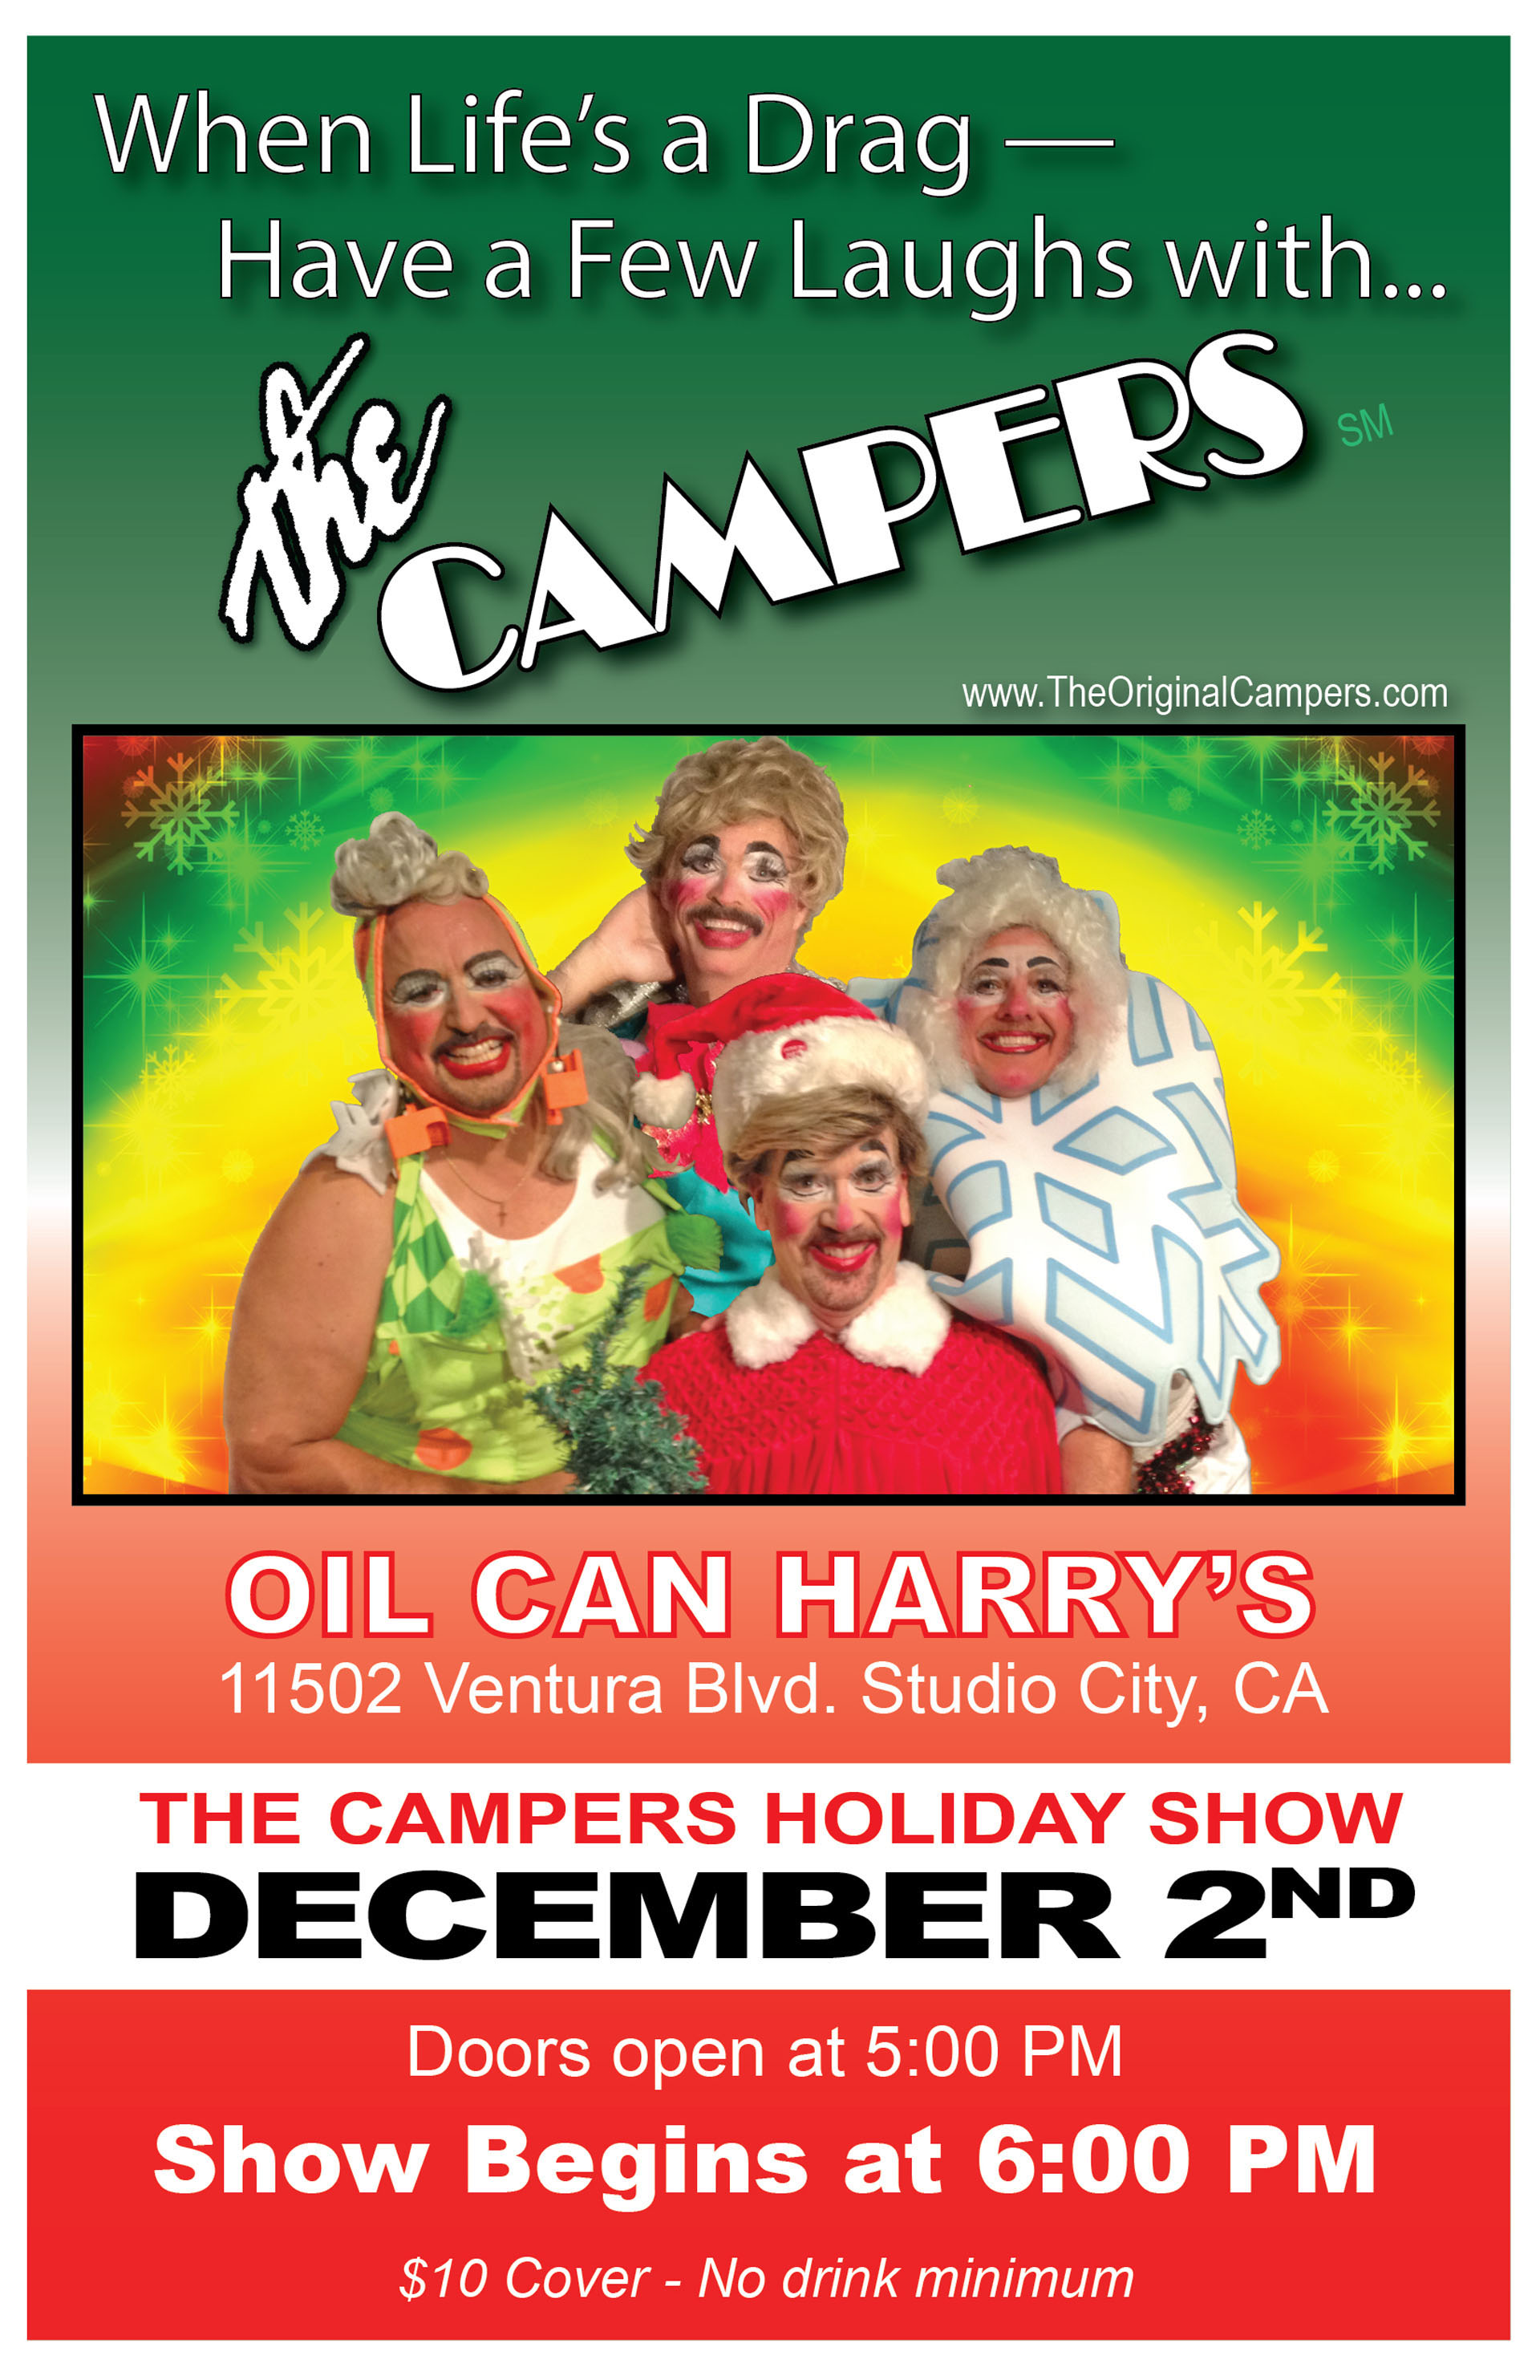 Oil Can Harry's Presents THE CAMPERS HOLIDAY SHOW: Sunday, December 2, 2018! Doors Open at 5:00 PM, and The Show Begins at 6:00 PM! $10 Cover - No drink minimum.